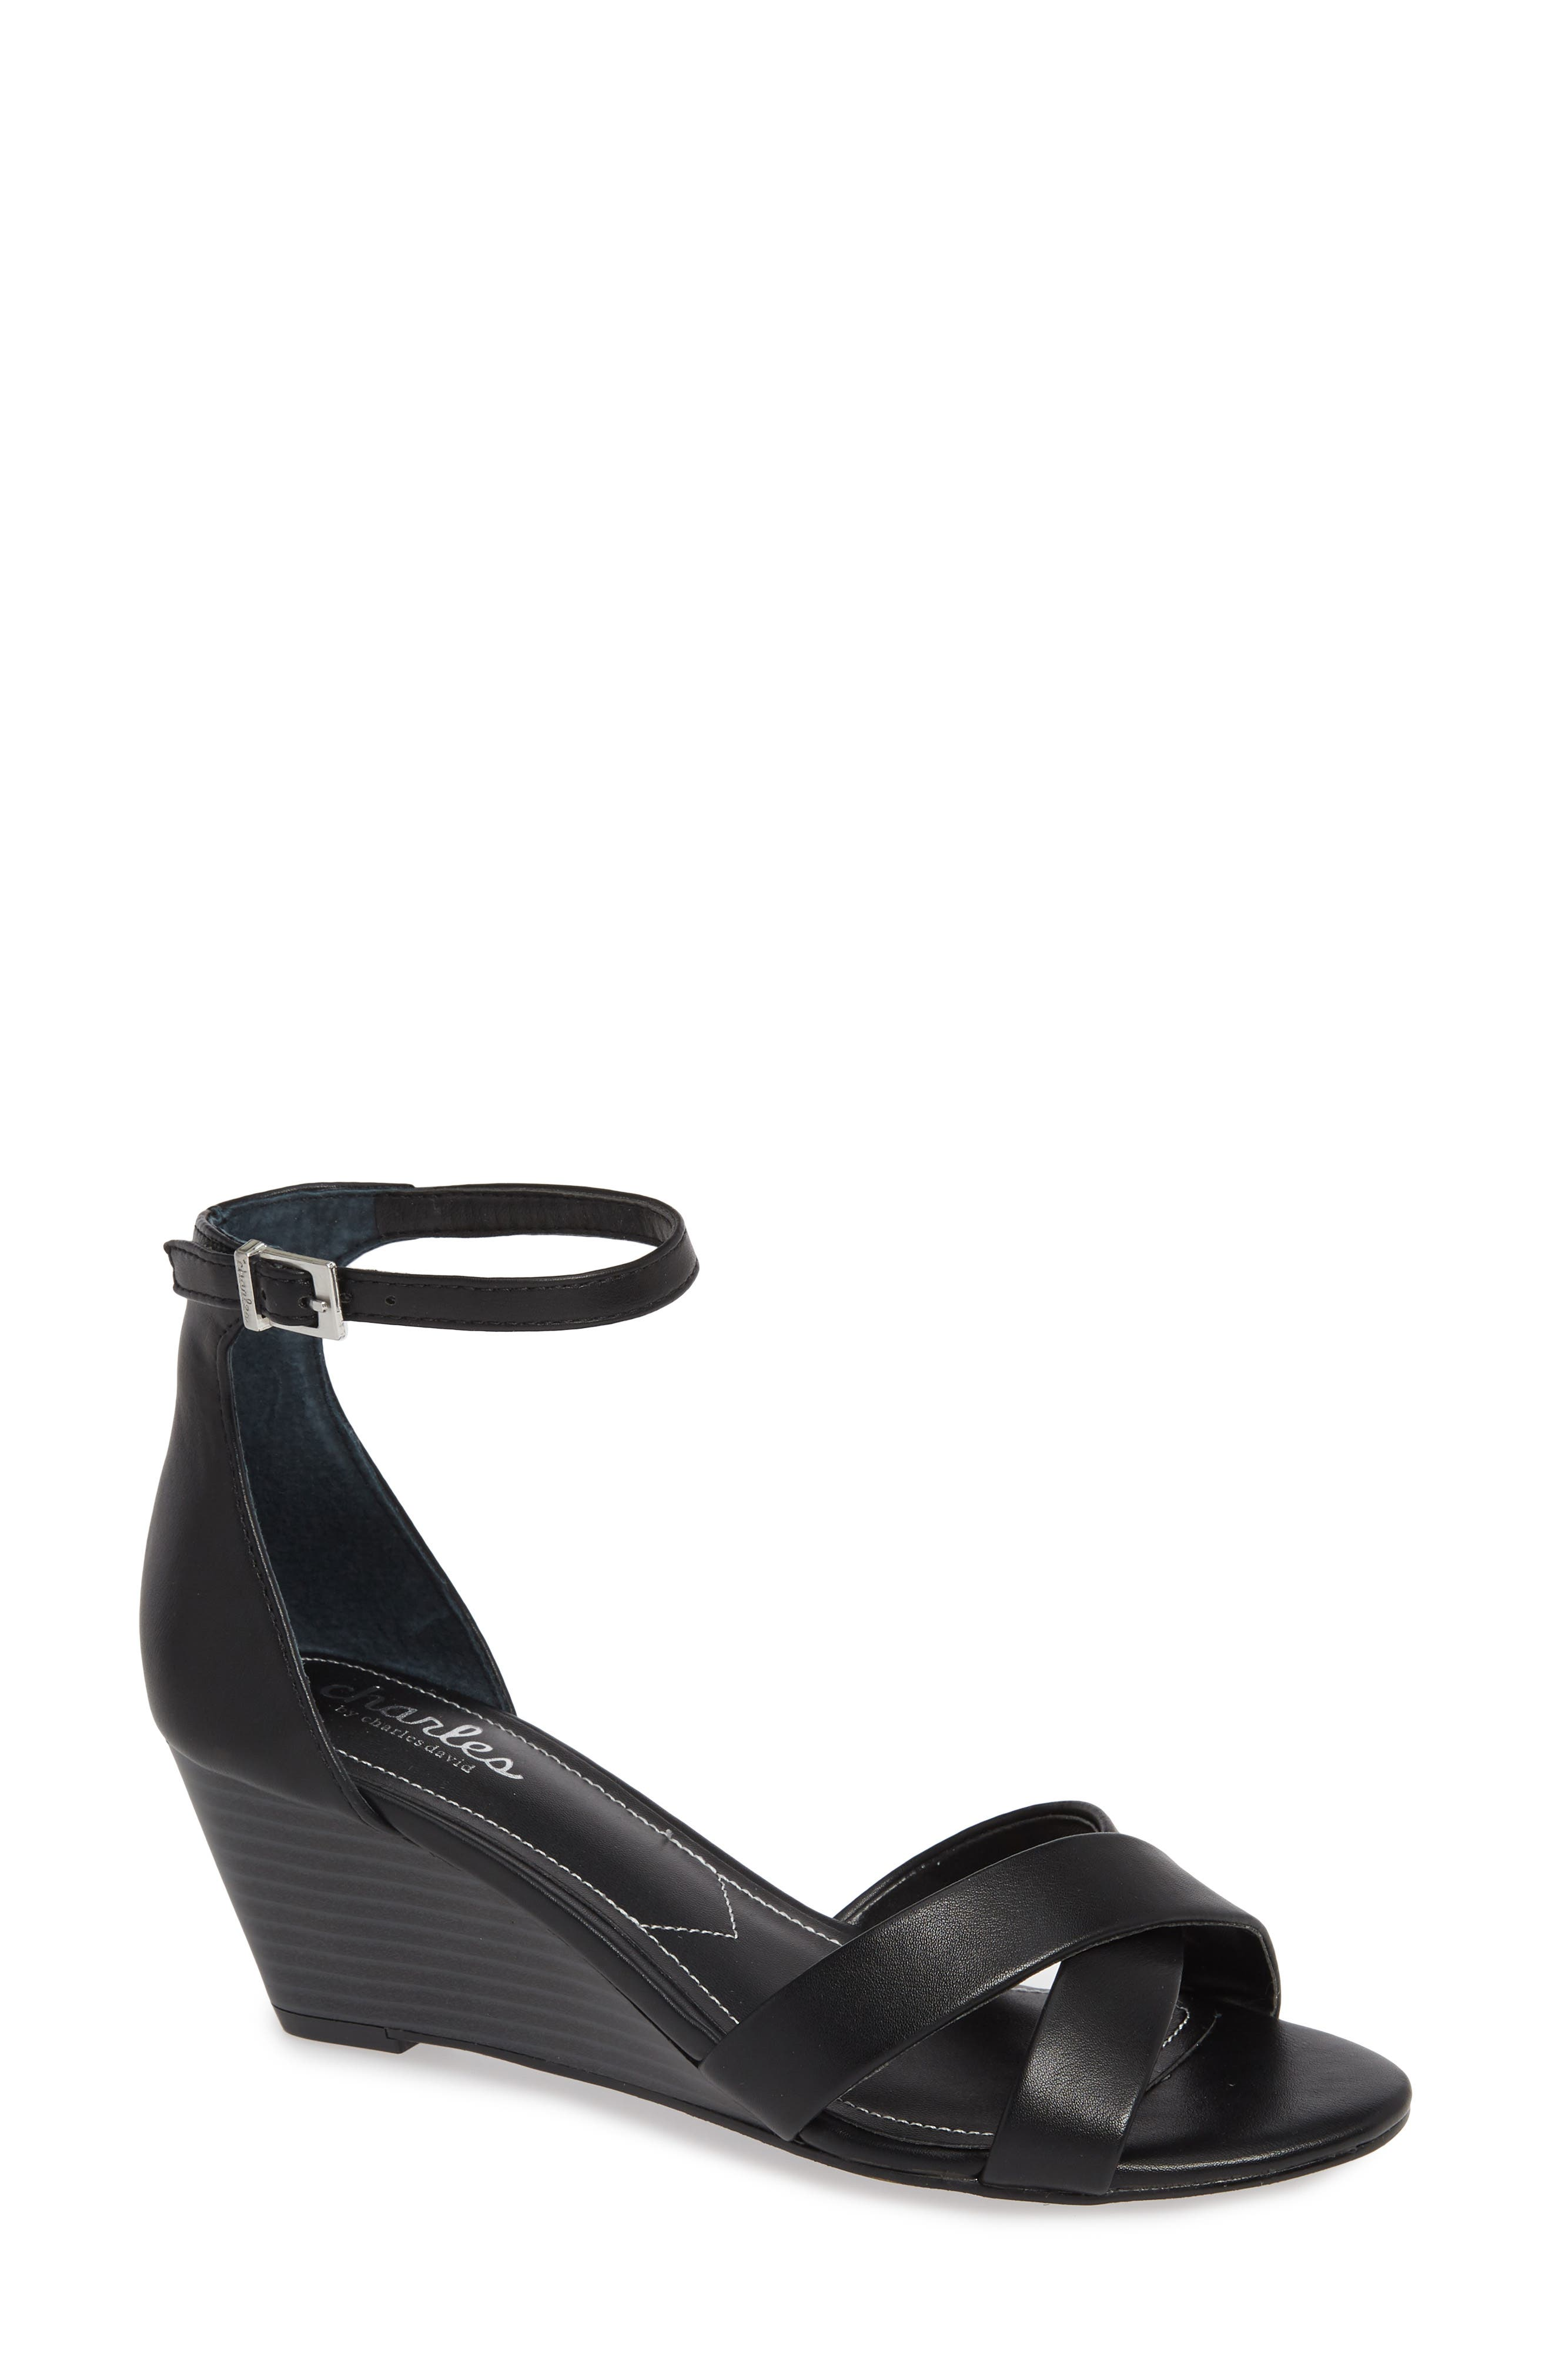 CHARLES BY CHARLES DAVID Griffin Ankle Strap Wedge, Main, color, BLACK FAUX LEATHER